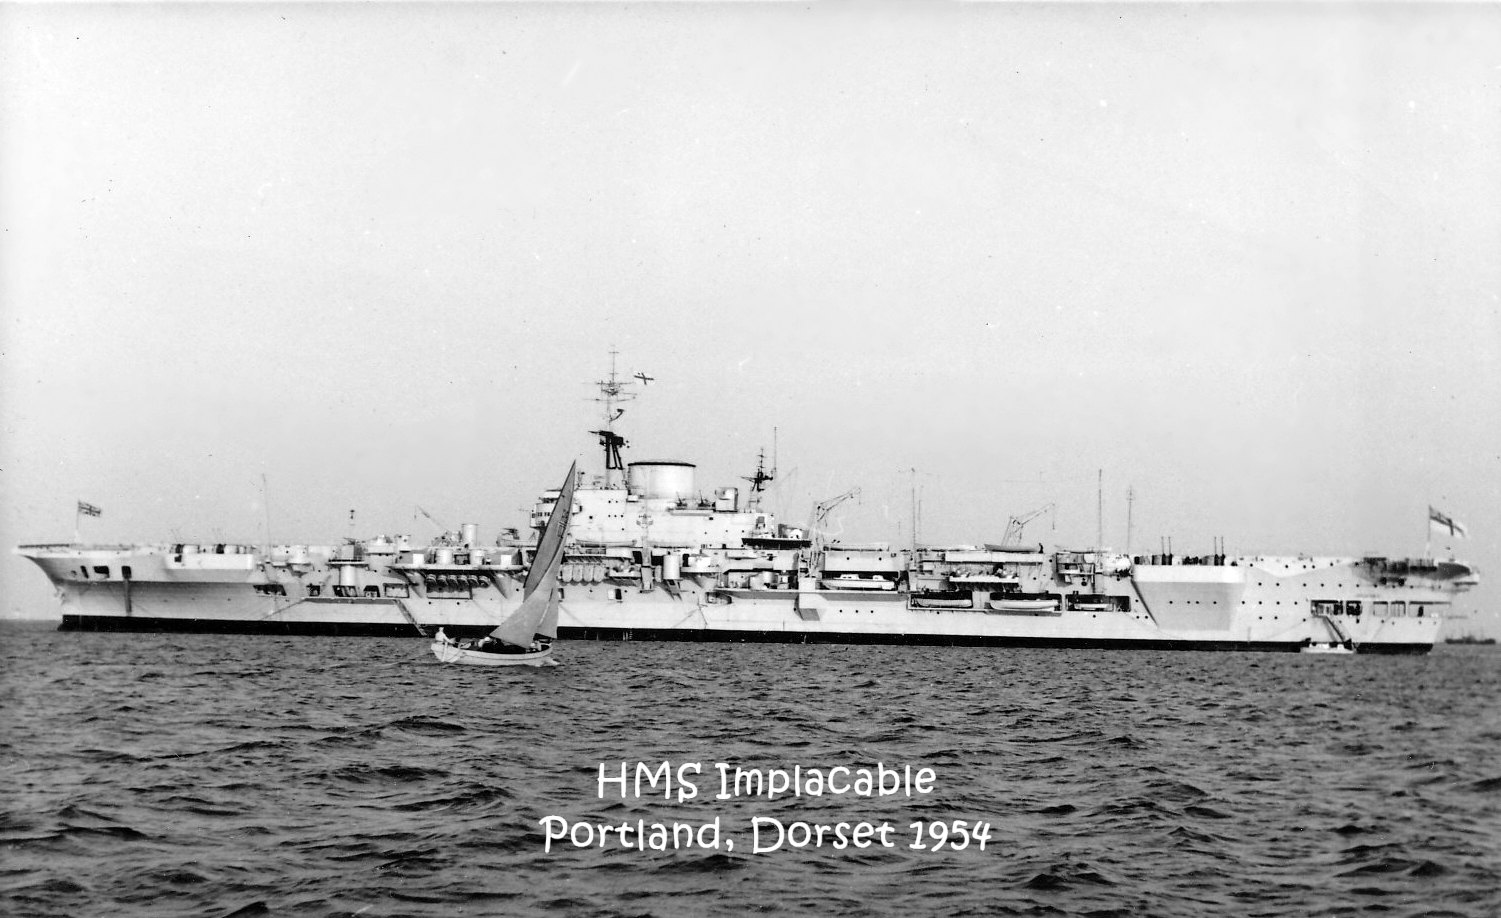 1954 HMS Implacable